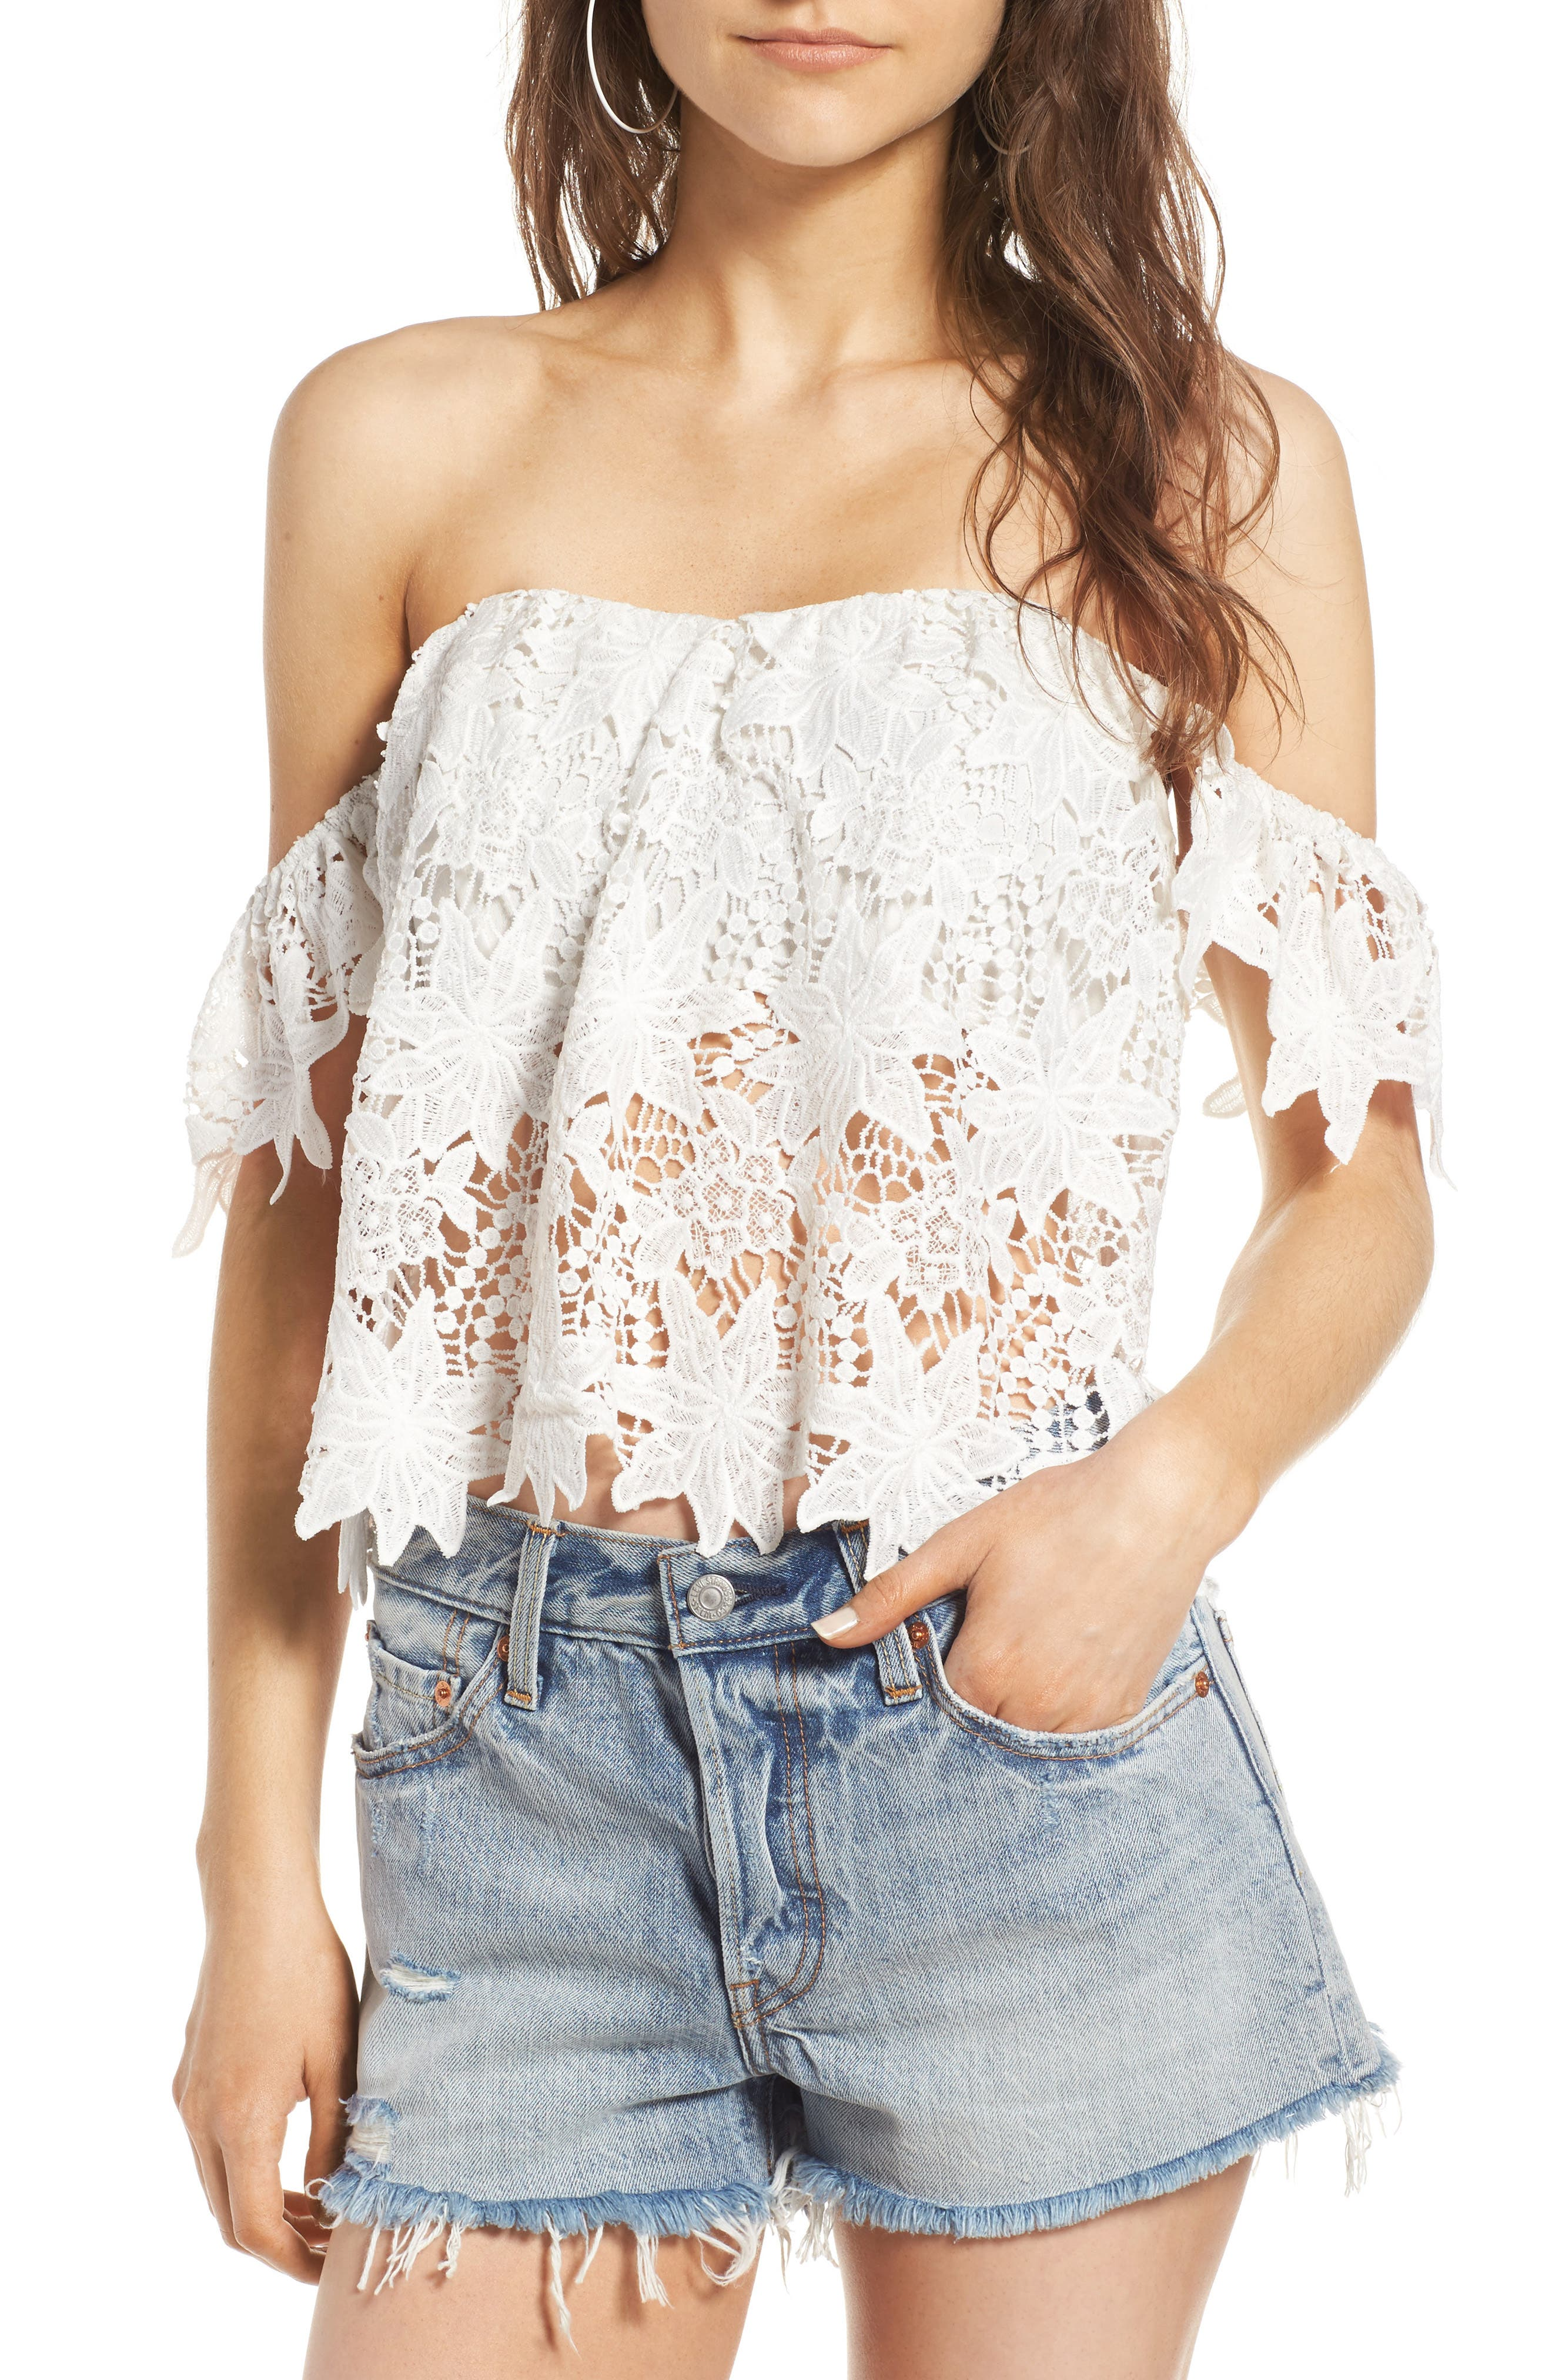 Alternate Image 1 Selected - ASTR the Label Adela Off the Shoulder Lace Top